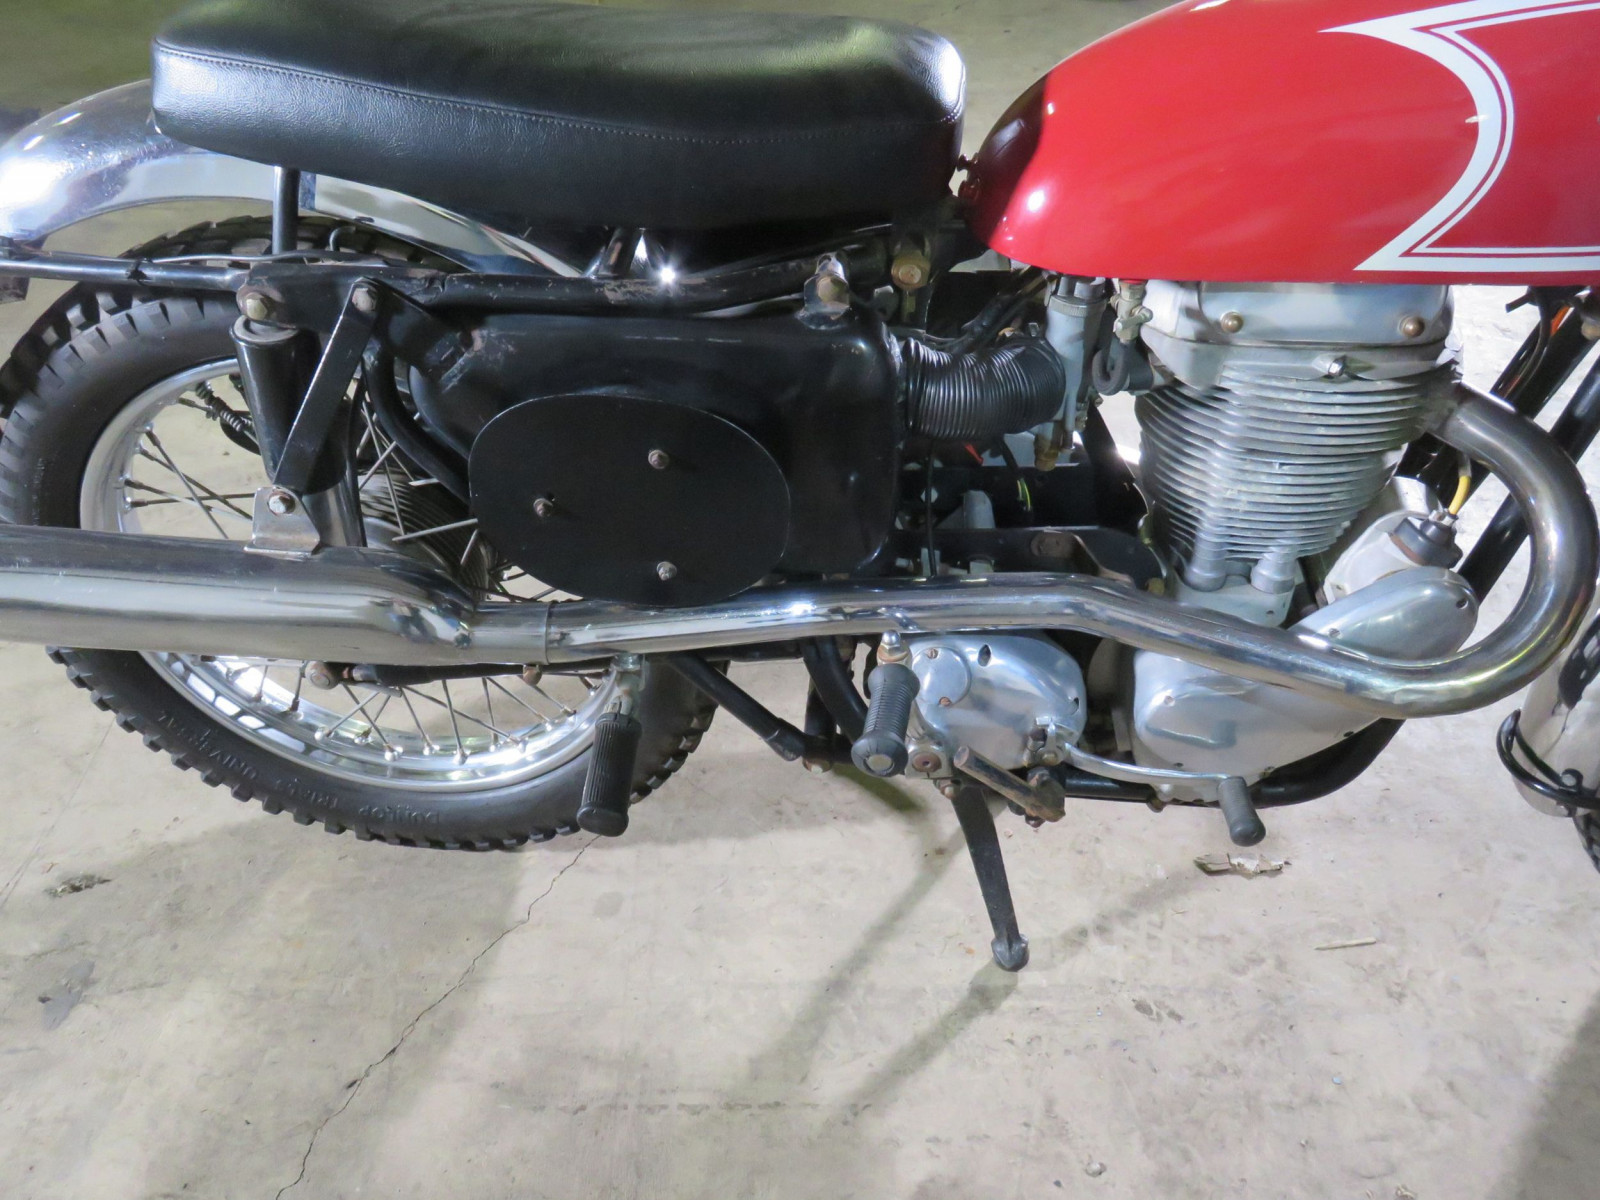 1967 Matchless G80 Competition Scrambler Motorcycle - Image 7